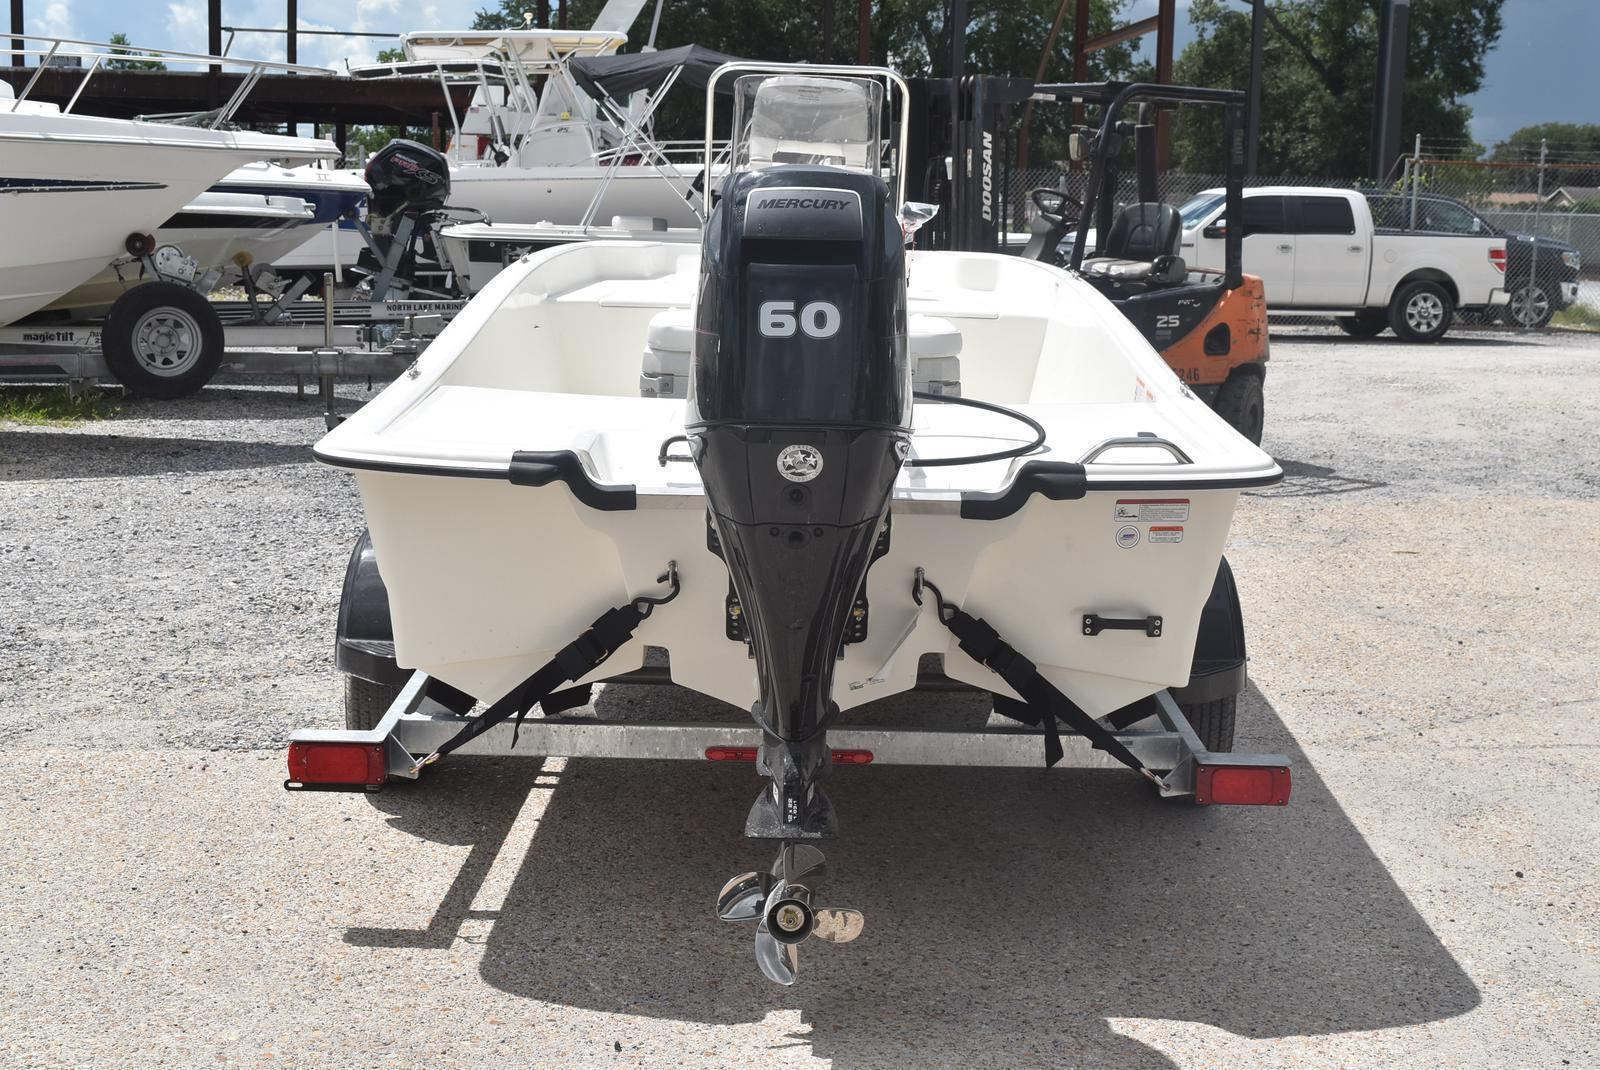 2020 Mako boat for sale, model of the boat is Pro Skiff 17, 75 ELPT & Image # 551 of 702